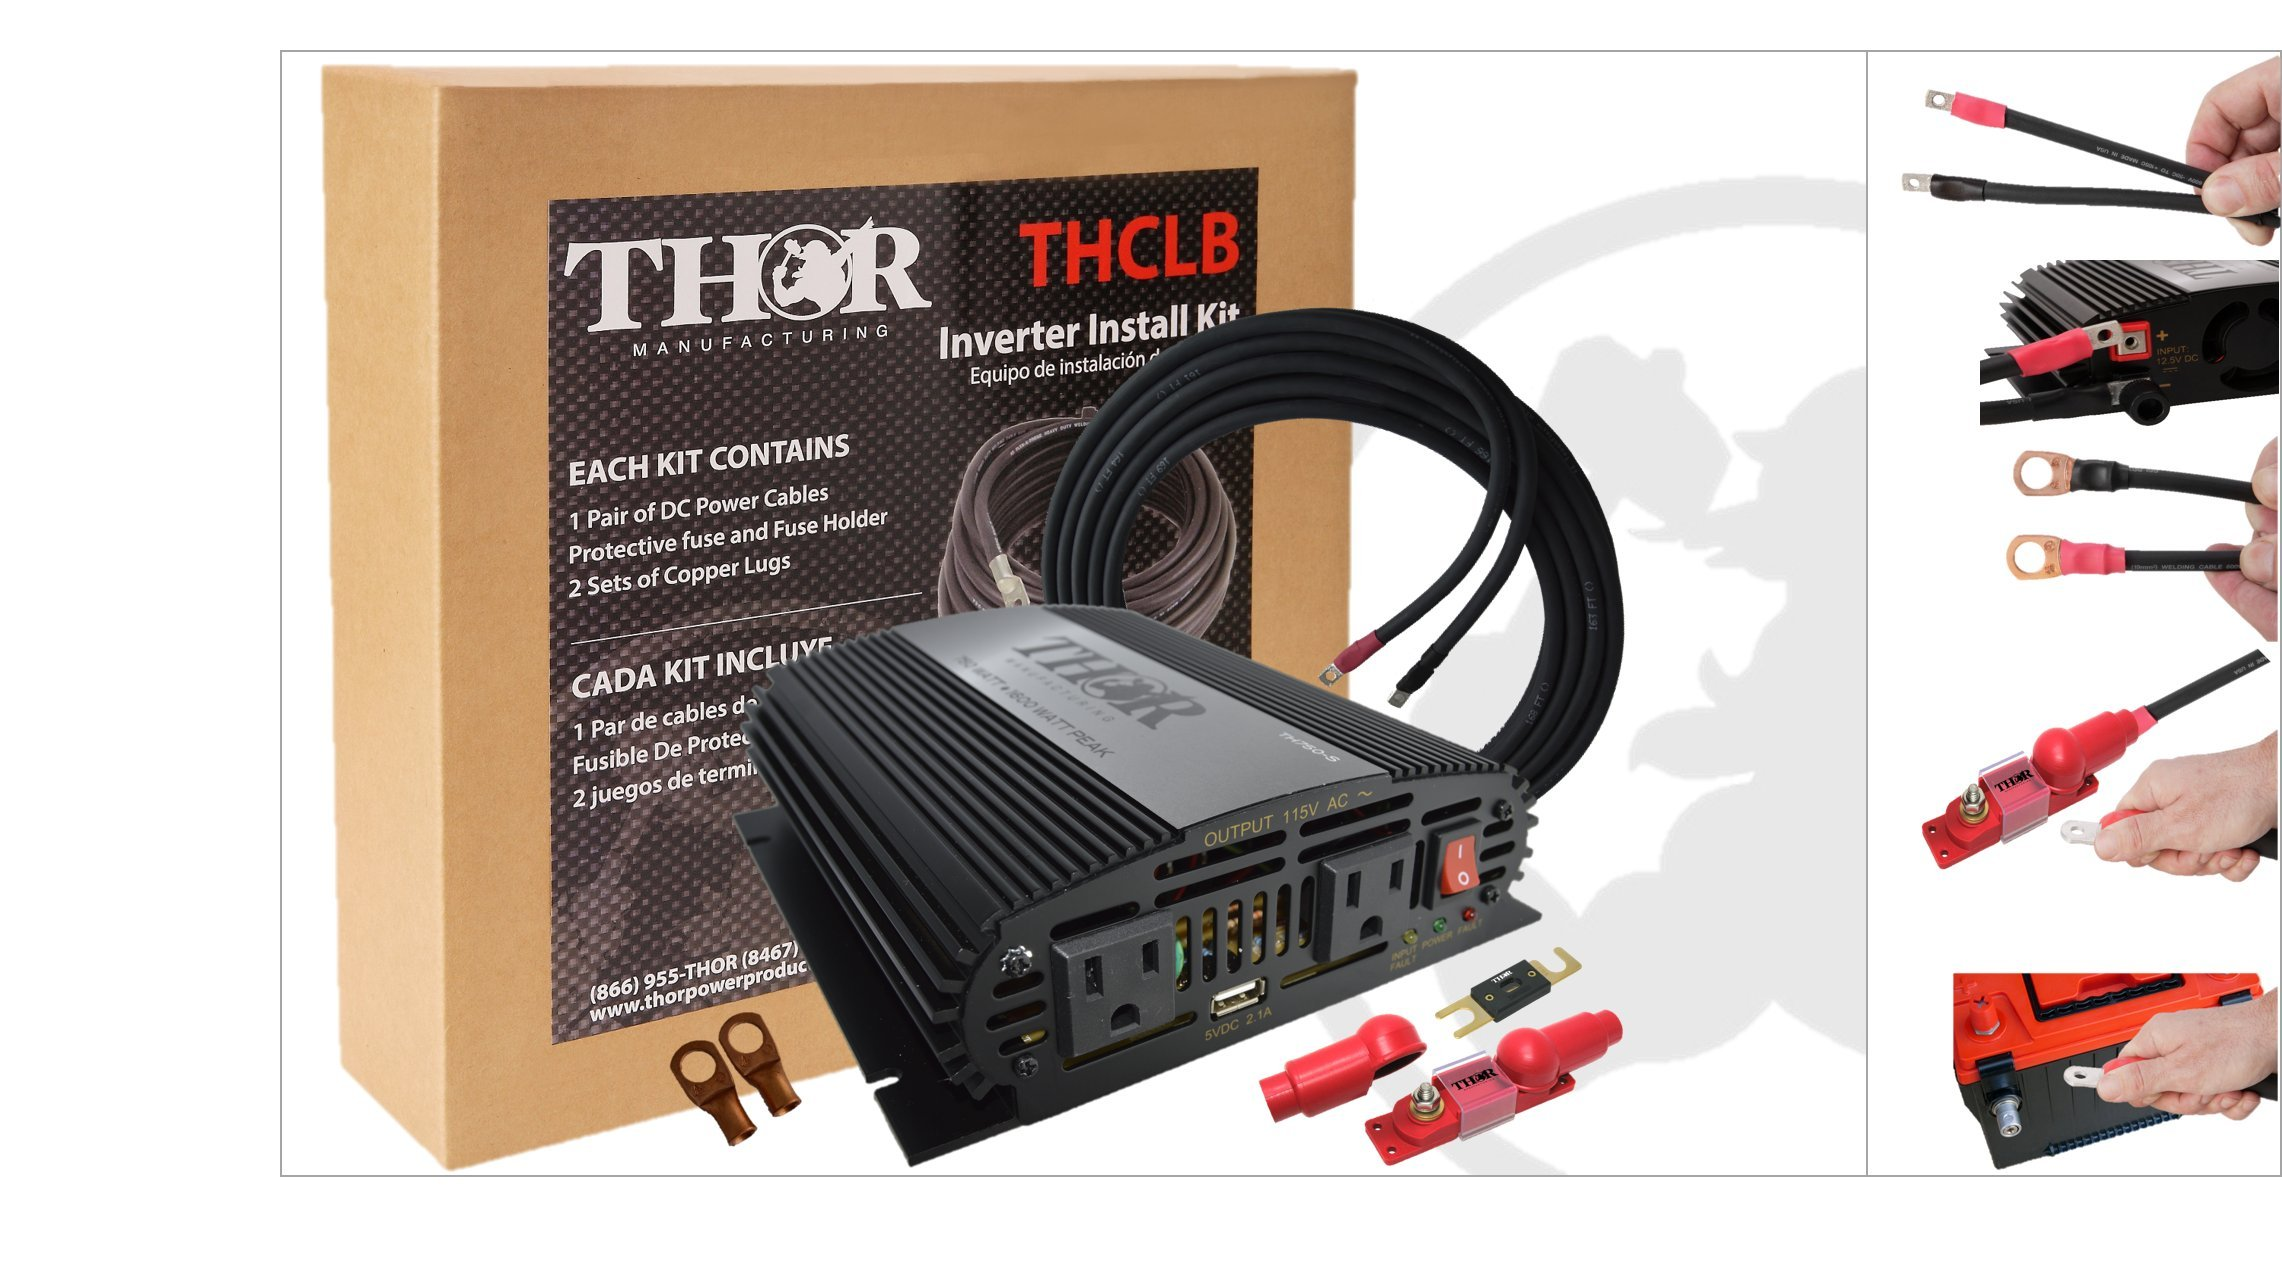 THOR Manufacturing TH750-S KIT2 Professional Grade Inverter Install Kits